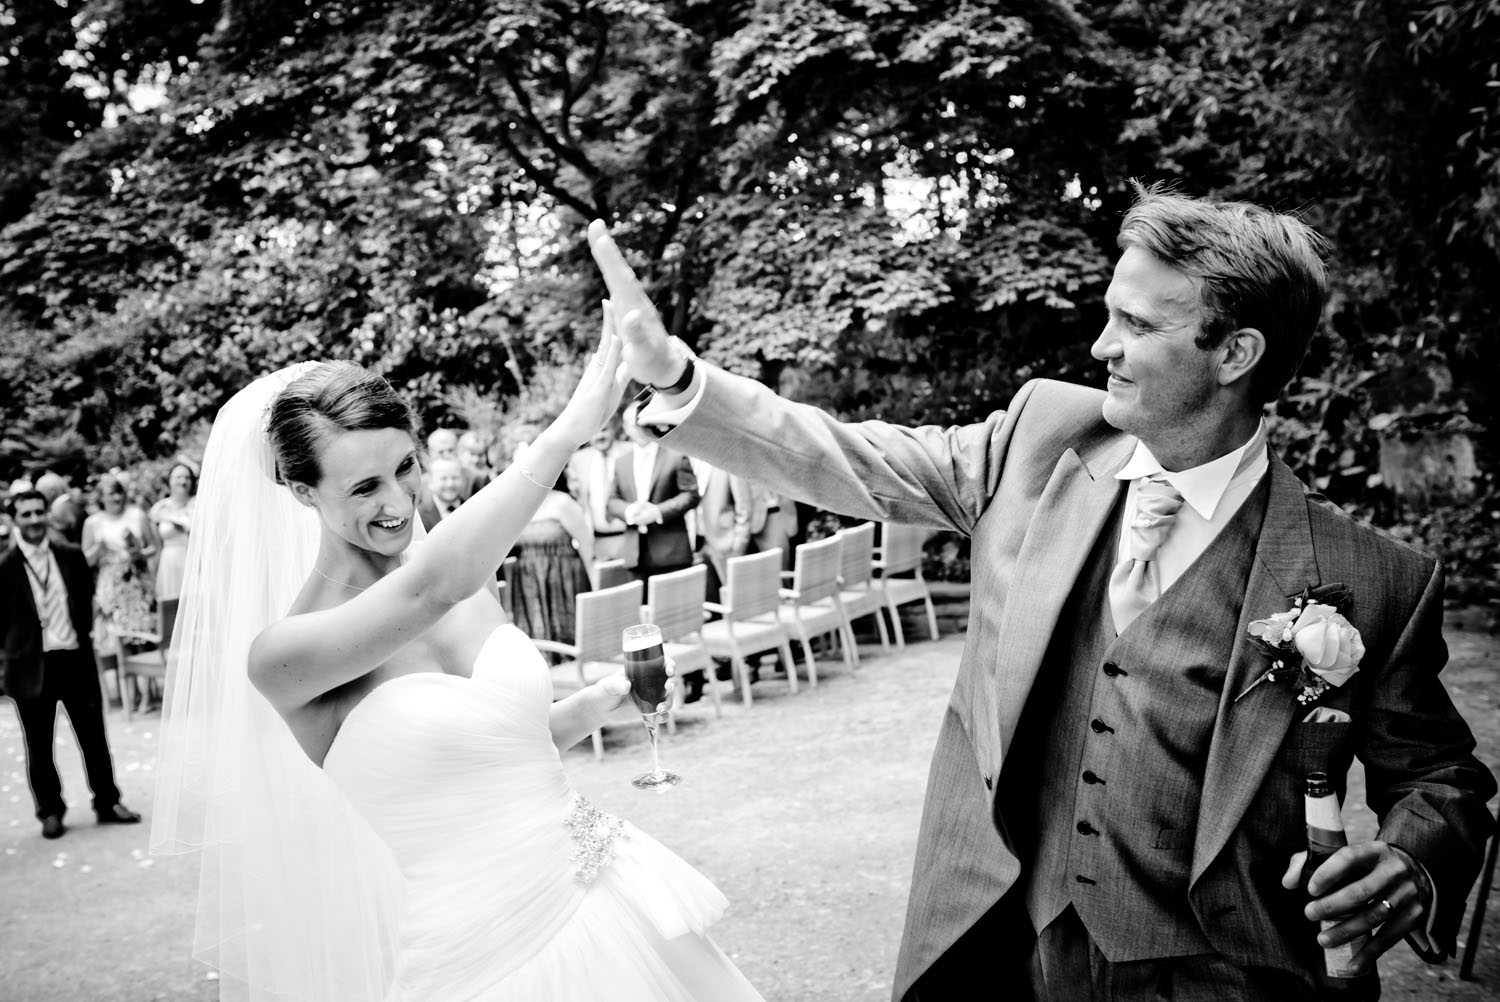 Bride and groom celebrating their outdoor wedding with a high five, while guest look on b hind them